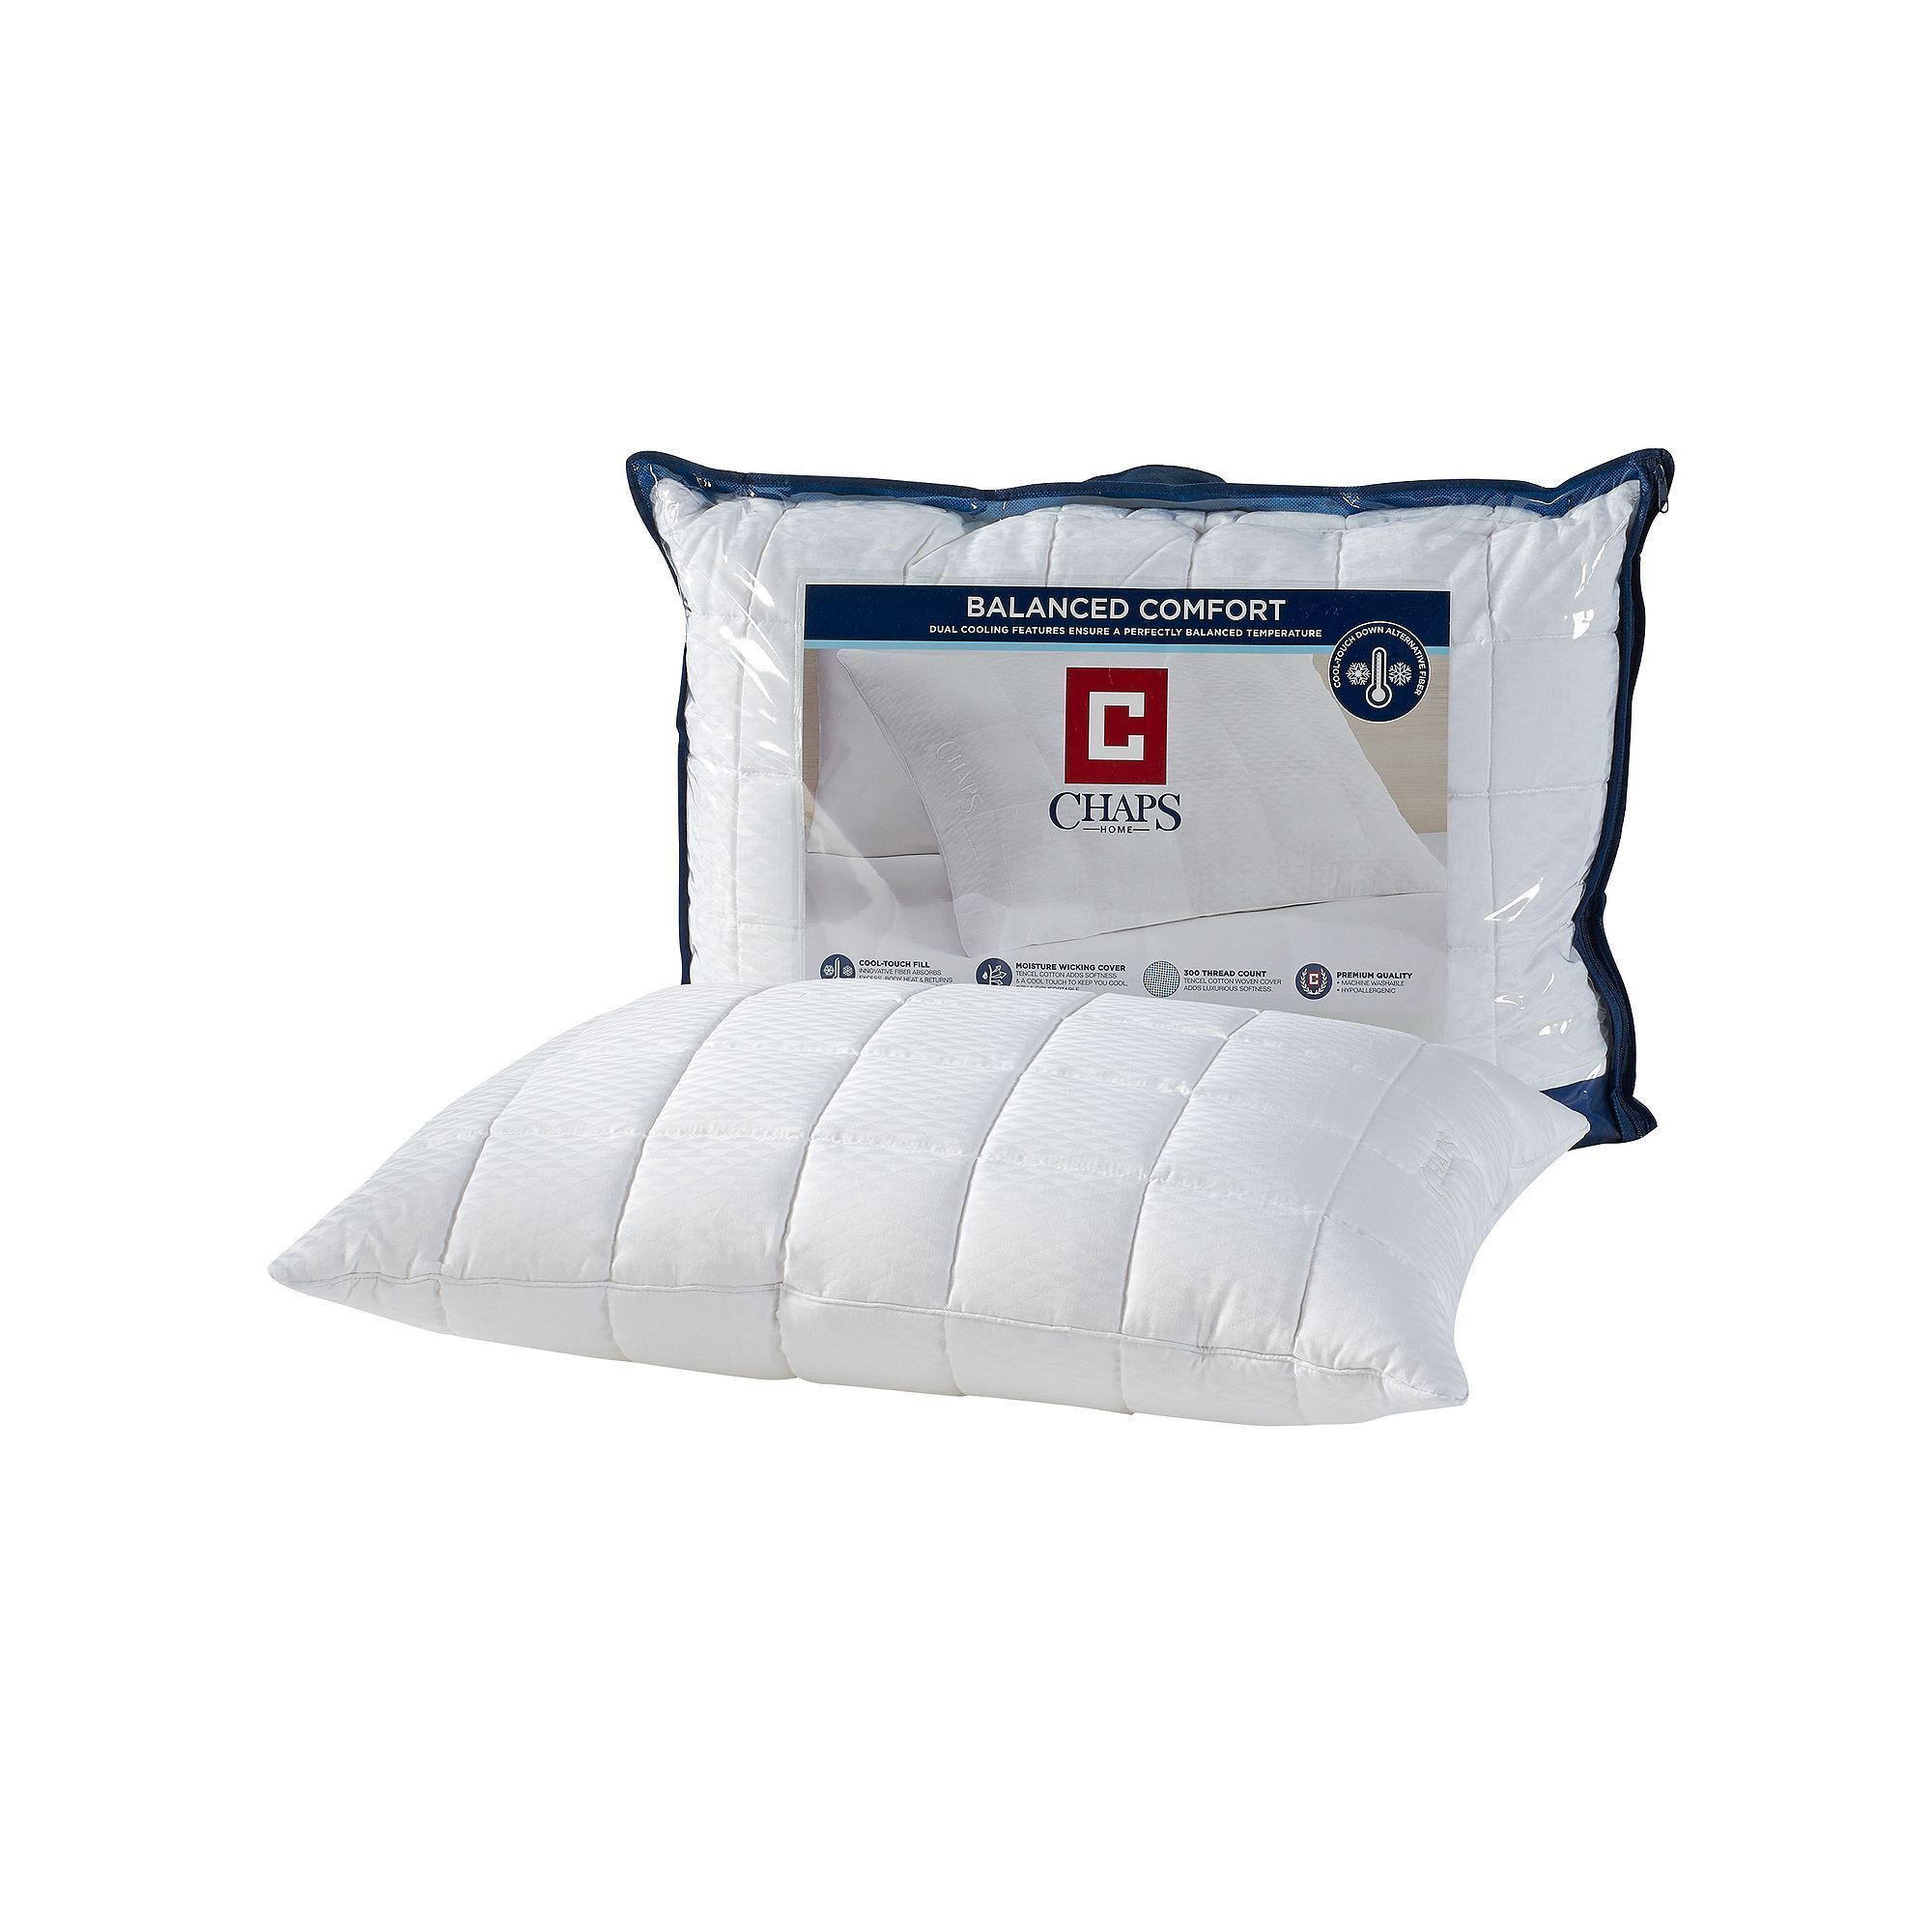 pillow memory today conduction bedding free overstock product neck bath sound therapy foam pillows bone therapeutic shipping music bonecon